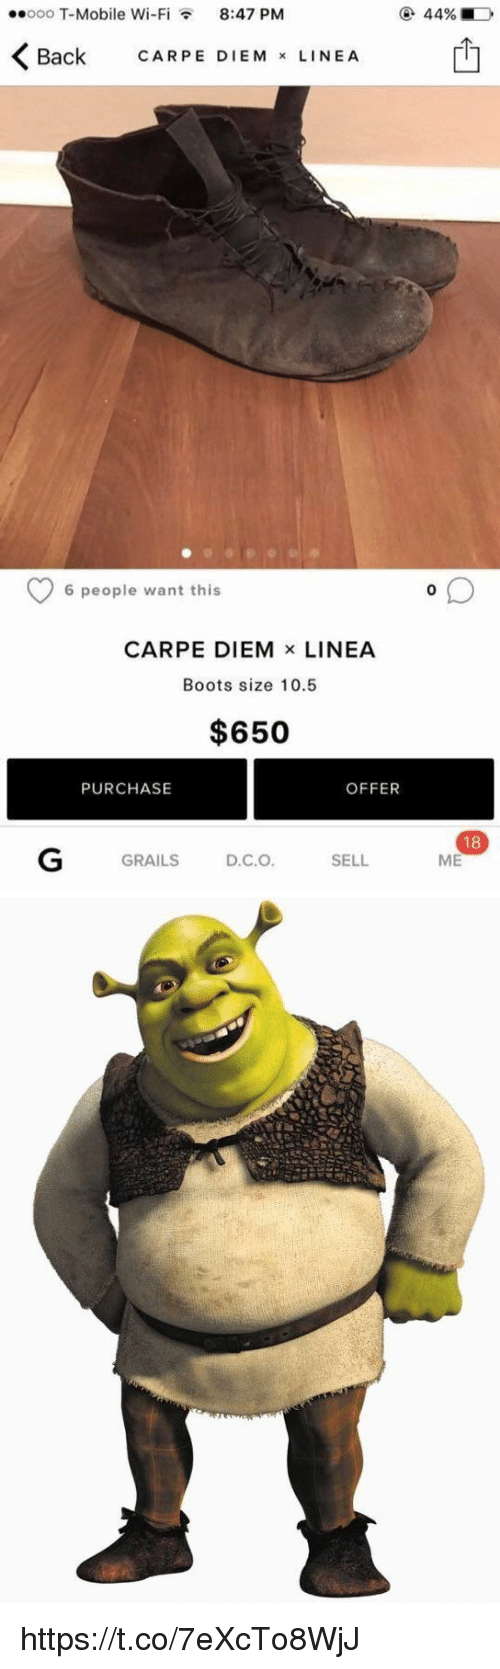 Carpe Diem: ..ooo T-Mobile Wi-F  8:47 PM  K Back CARPE M  x LINE A  EDIE 6 people want this  CARPE DIEM  x LINEA  Boots size 10.5  $650  OFFER  PURCHASE  GRAILS  D.C.O  SELL  180  ME https://t.co/7eXcTo8WjJ